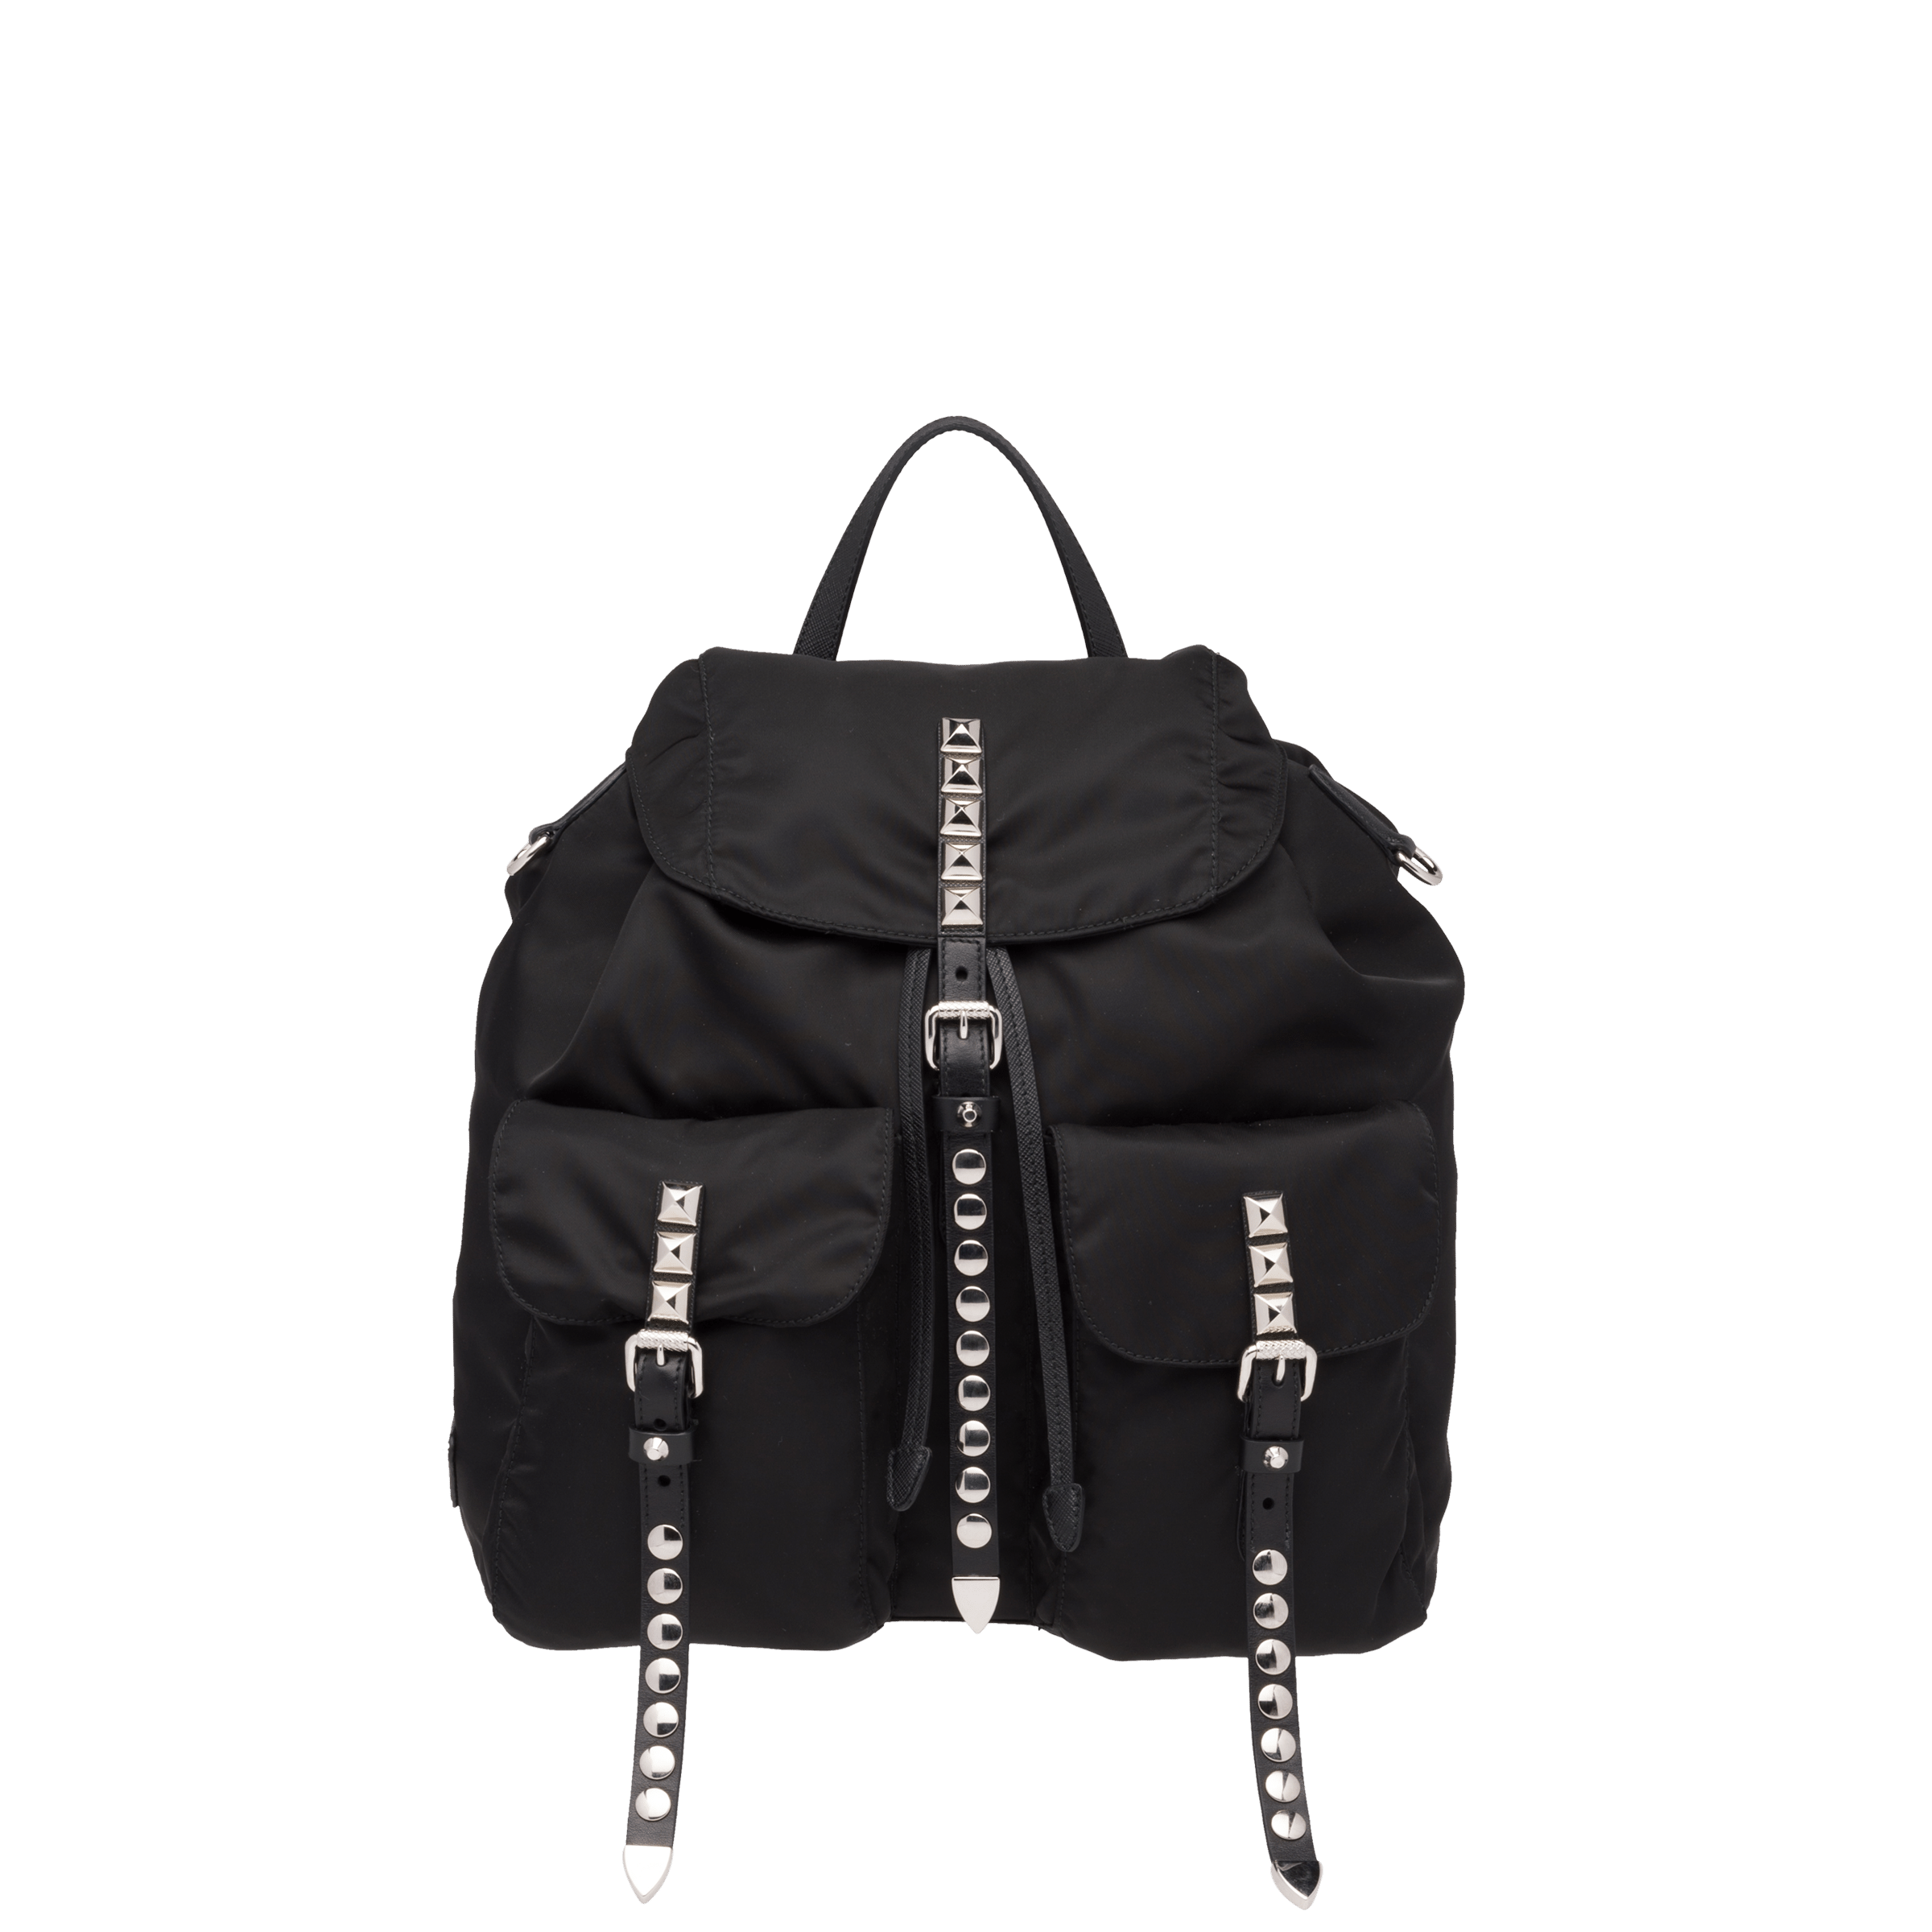 e17445047231 Prada Black Nylon Backpack | Prada - 1BZ811_2BYB_F0002_V_OYO